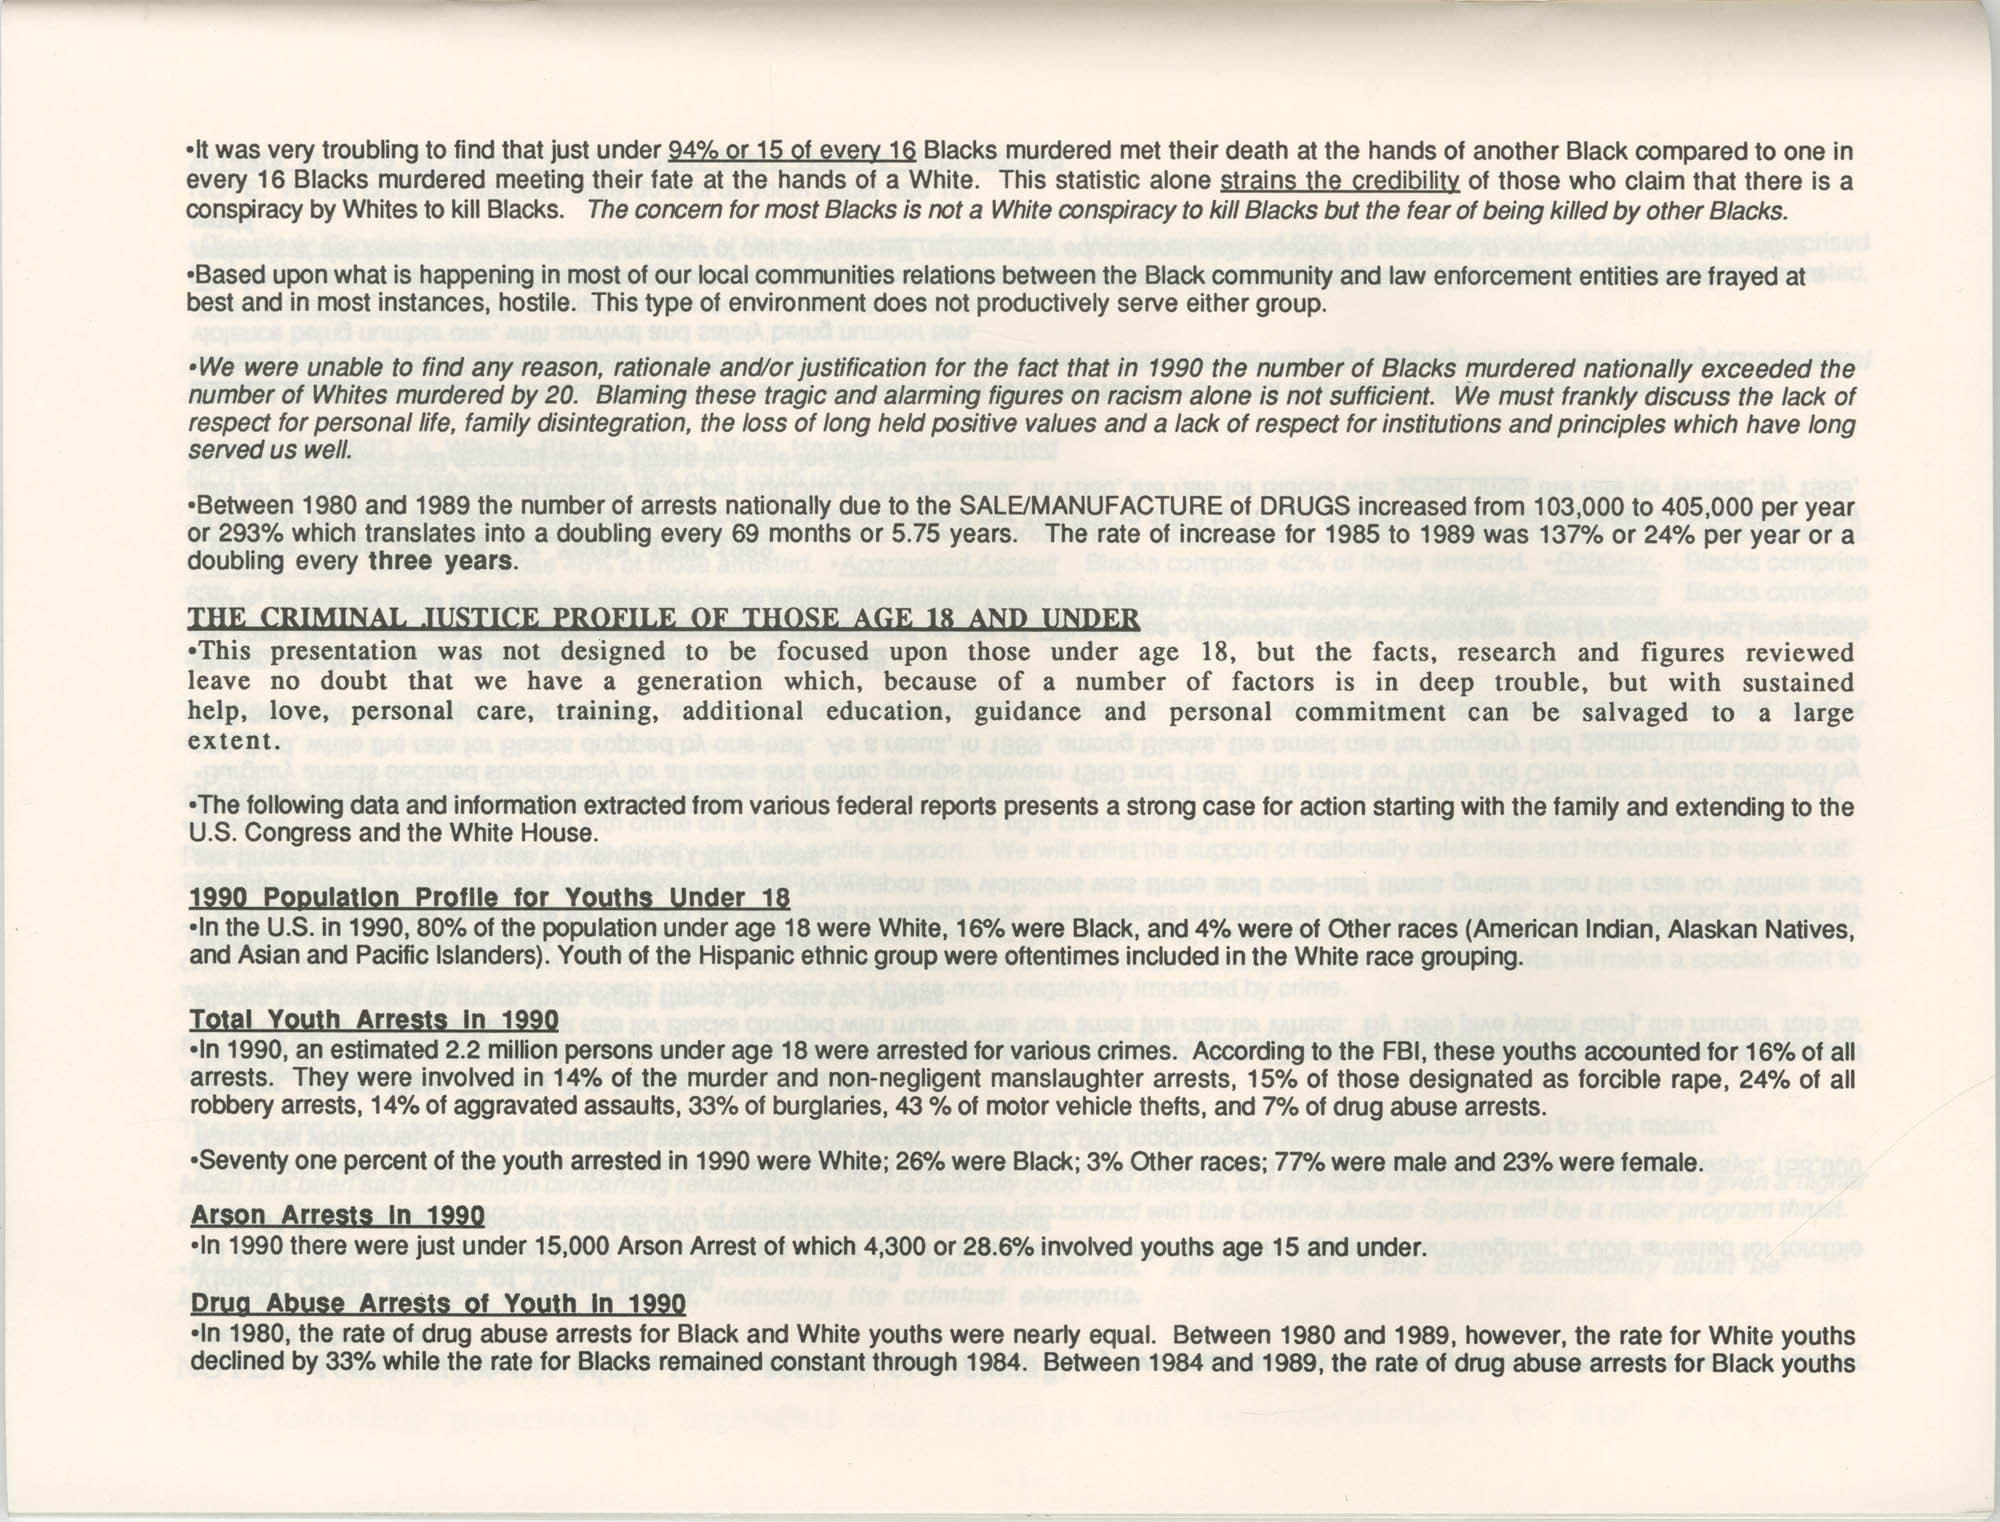 Crime and Criminal Activities in the U.S.A., NAACP National Board of Directors, Executive Summary, Page 3